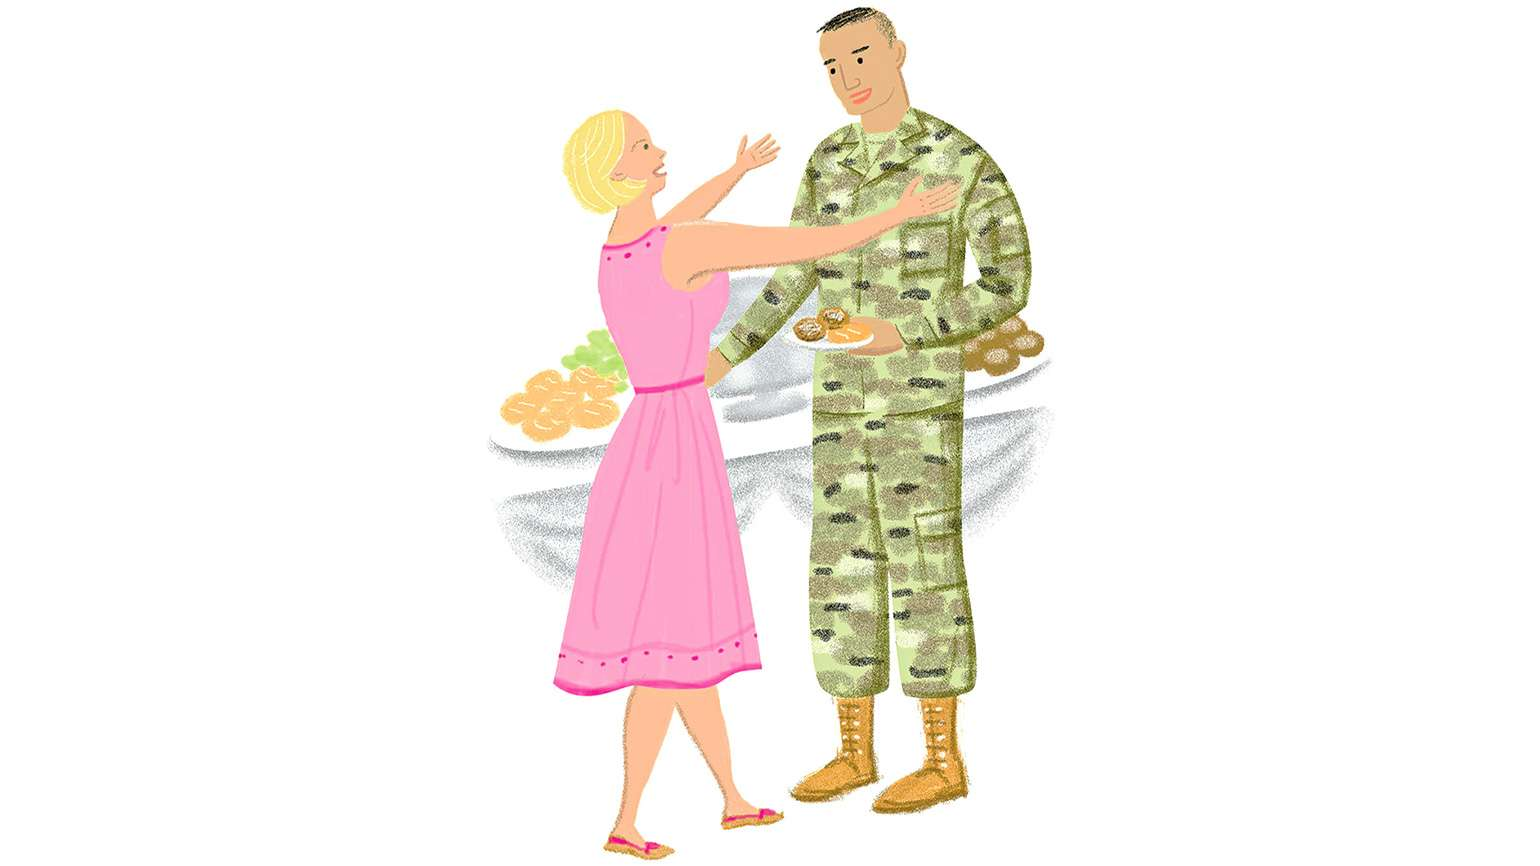 An artist's rendering of a grandmother hugging a soldier